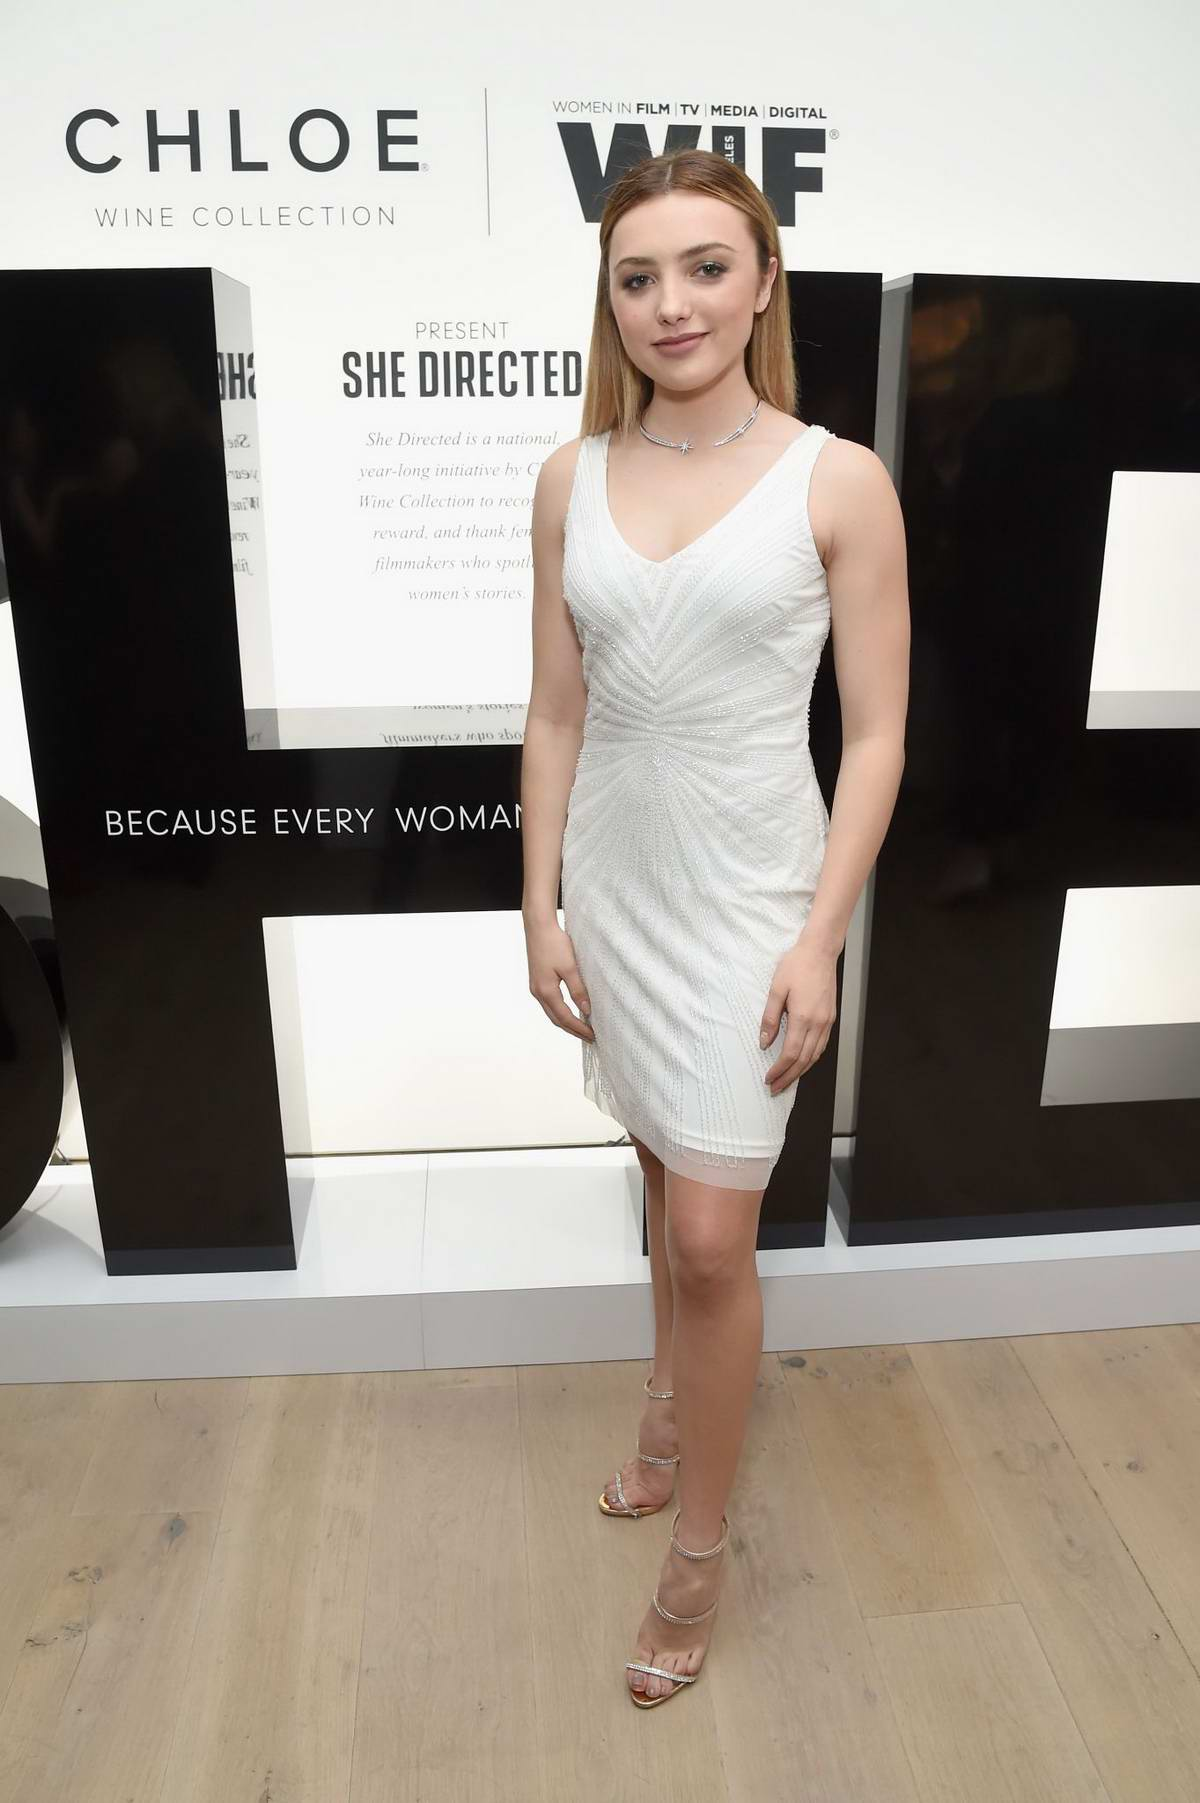 Peyton Roi List attends the Chloe Wine Collection Launches Its She Directed Campaign in Beverly Hills, Los Angeles